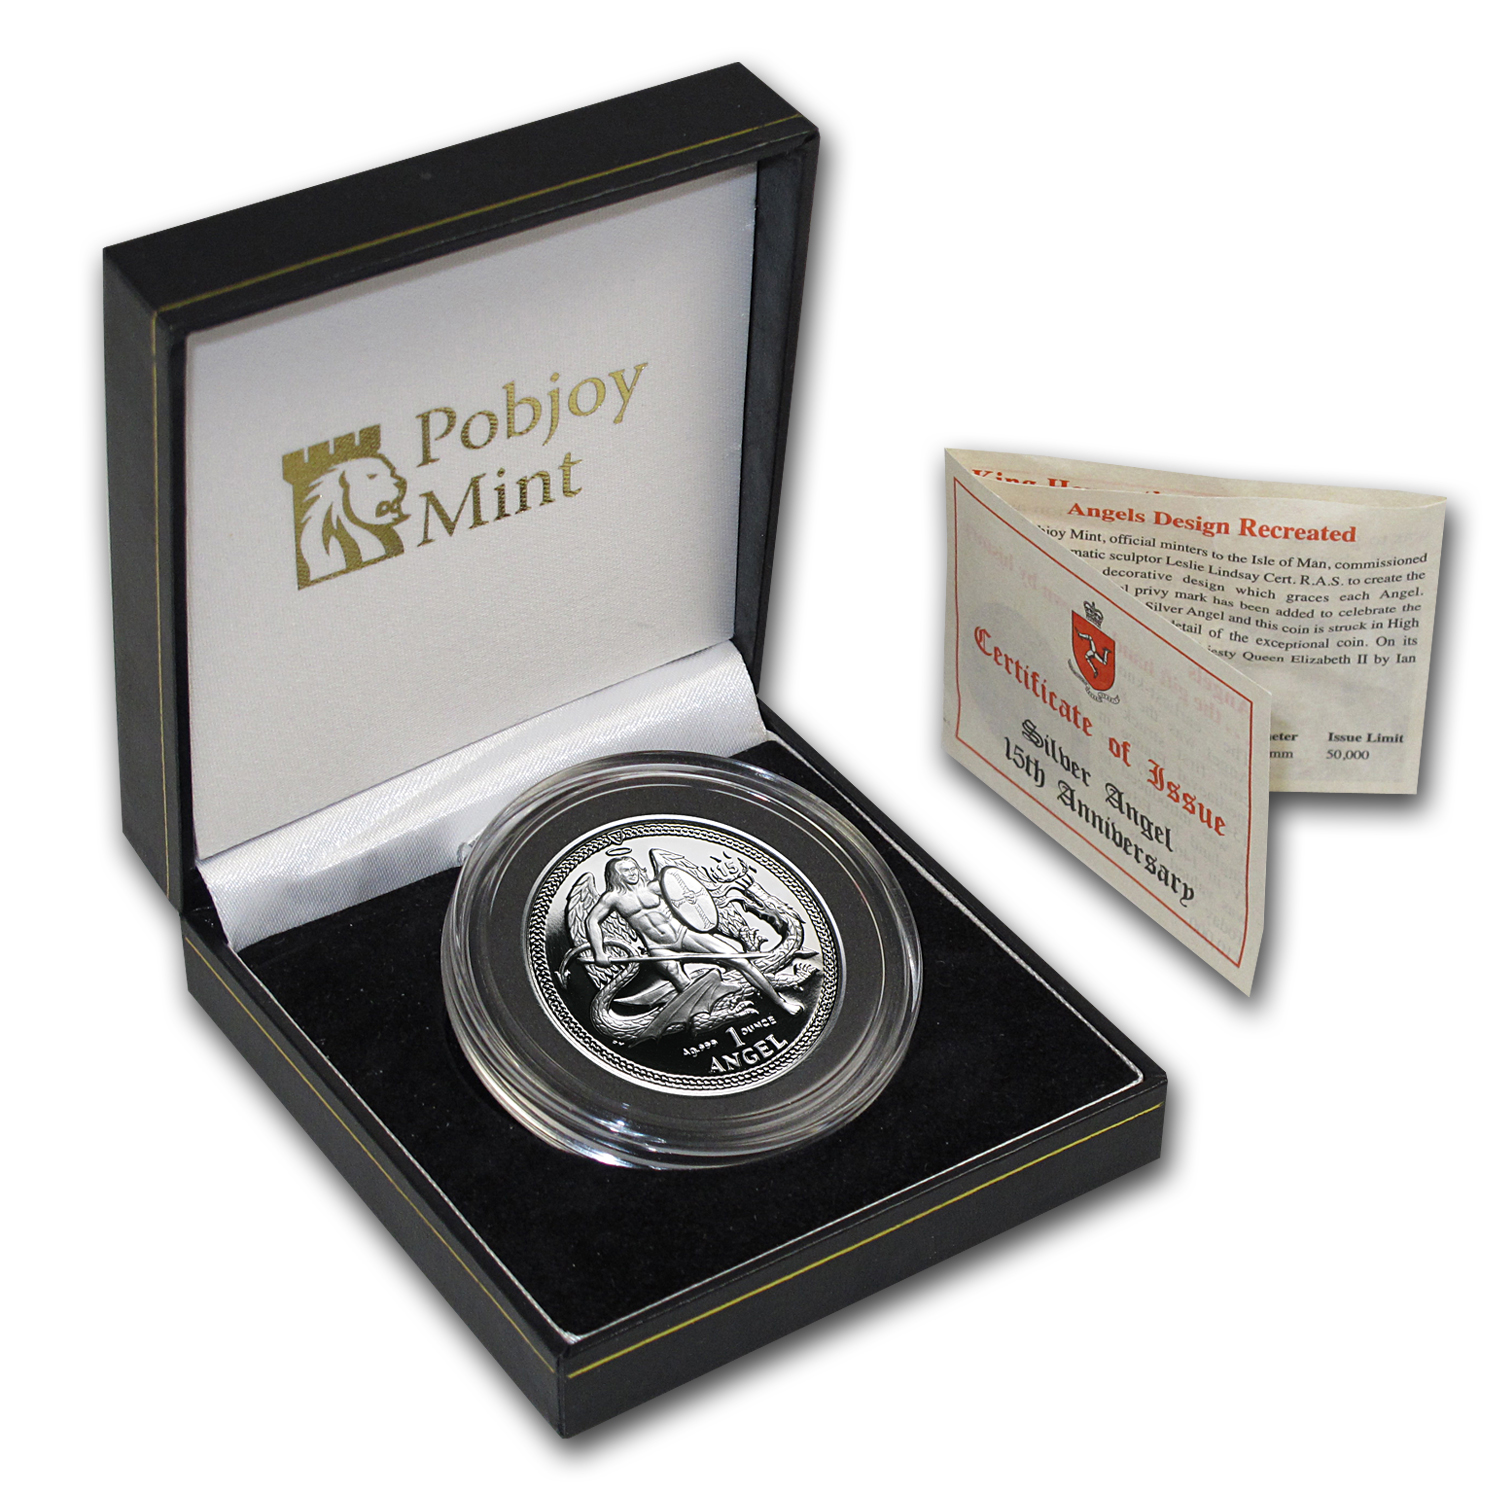 2010 Isle of Man 1 oz Silver Angel Proof (High Relief)